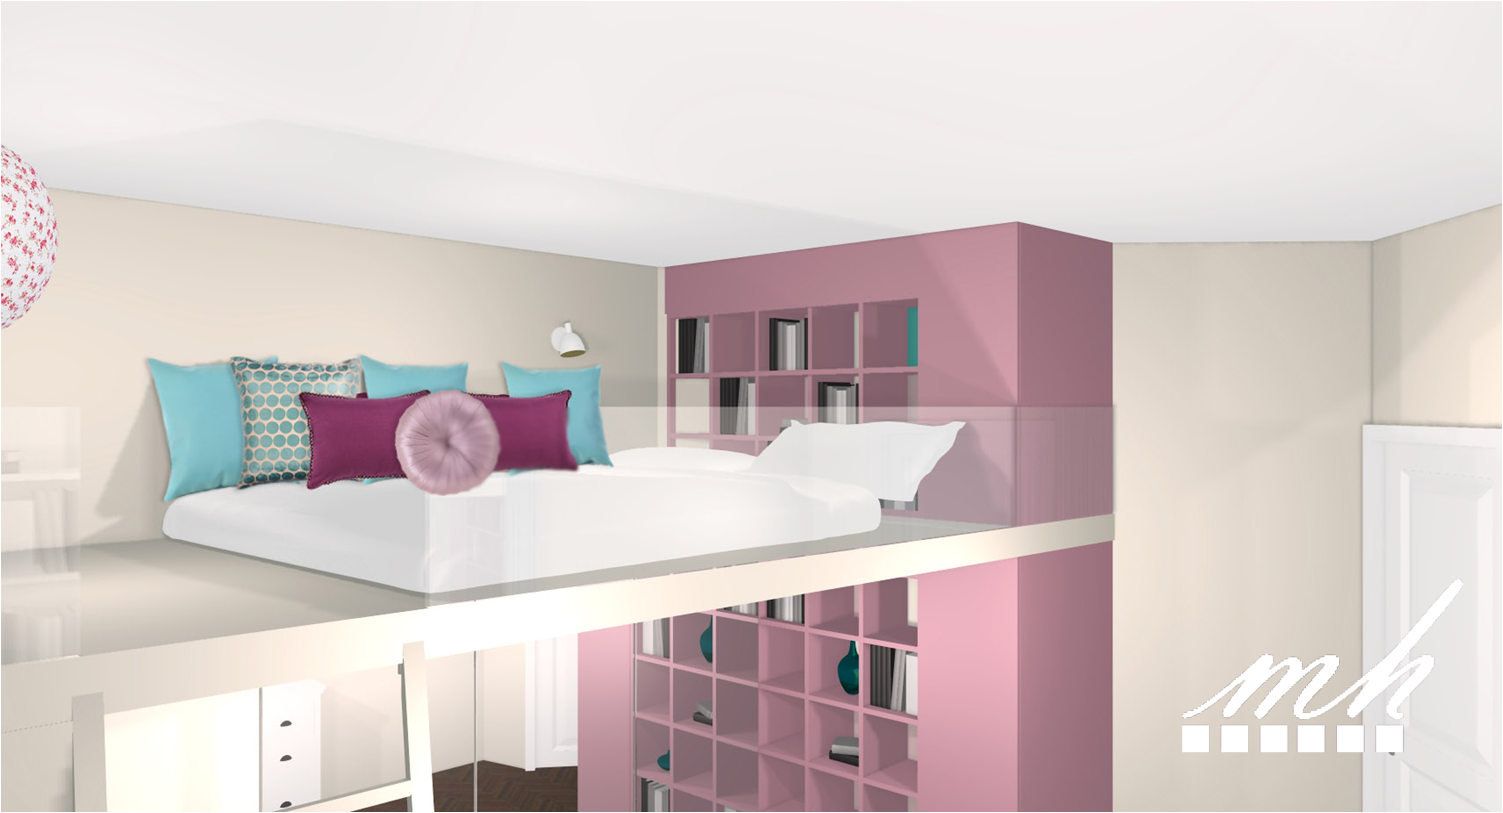 Comment decorer sa mezzanine mezzanine pinterest for Amenager une chambre en longueur